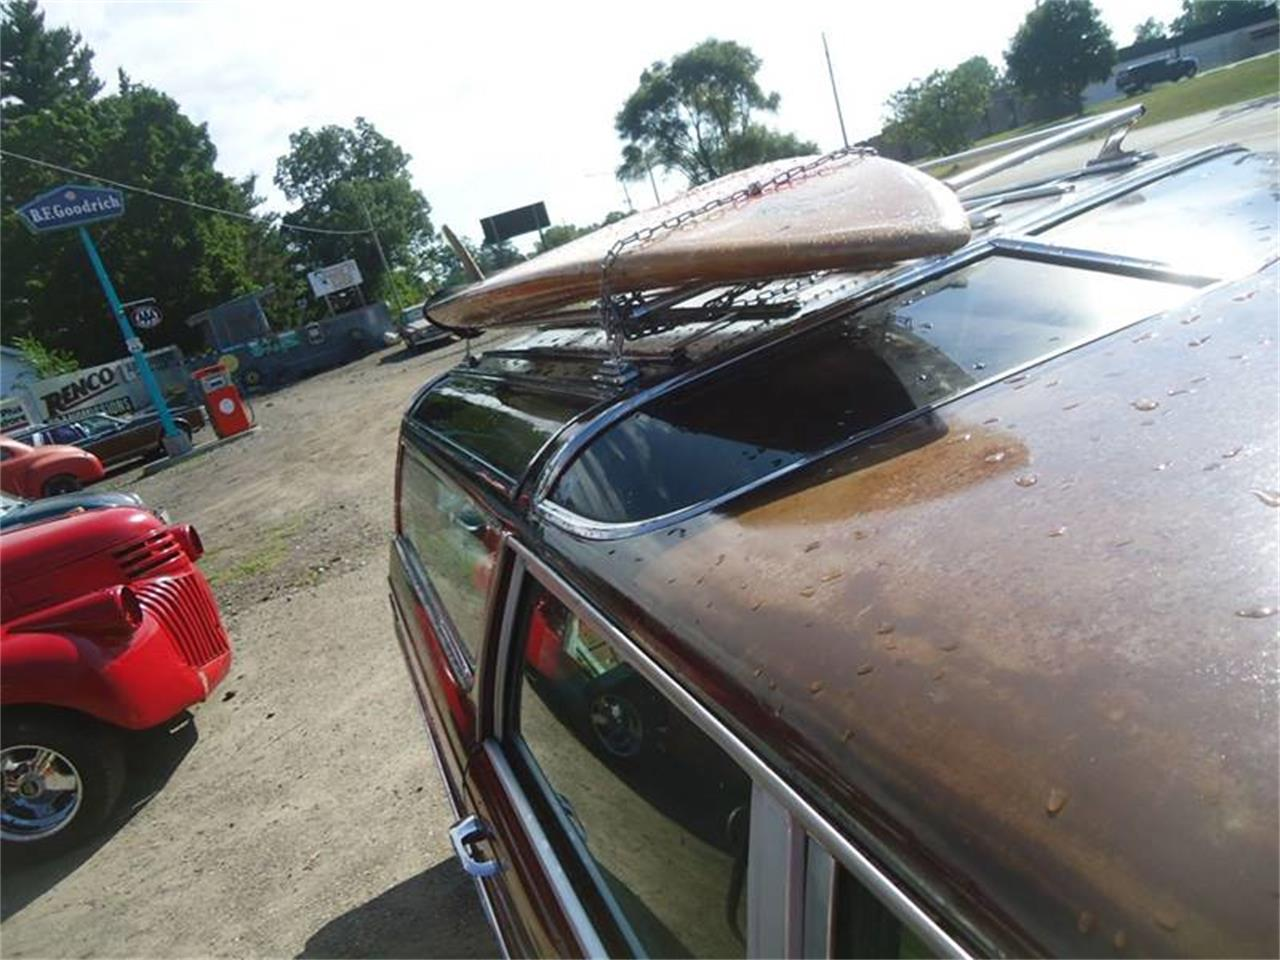 1965 sport wagon glass roof buick for sale in Jackson, MI – photo 16